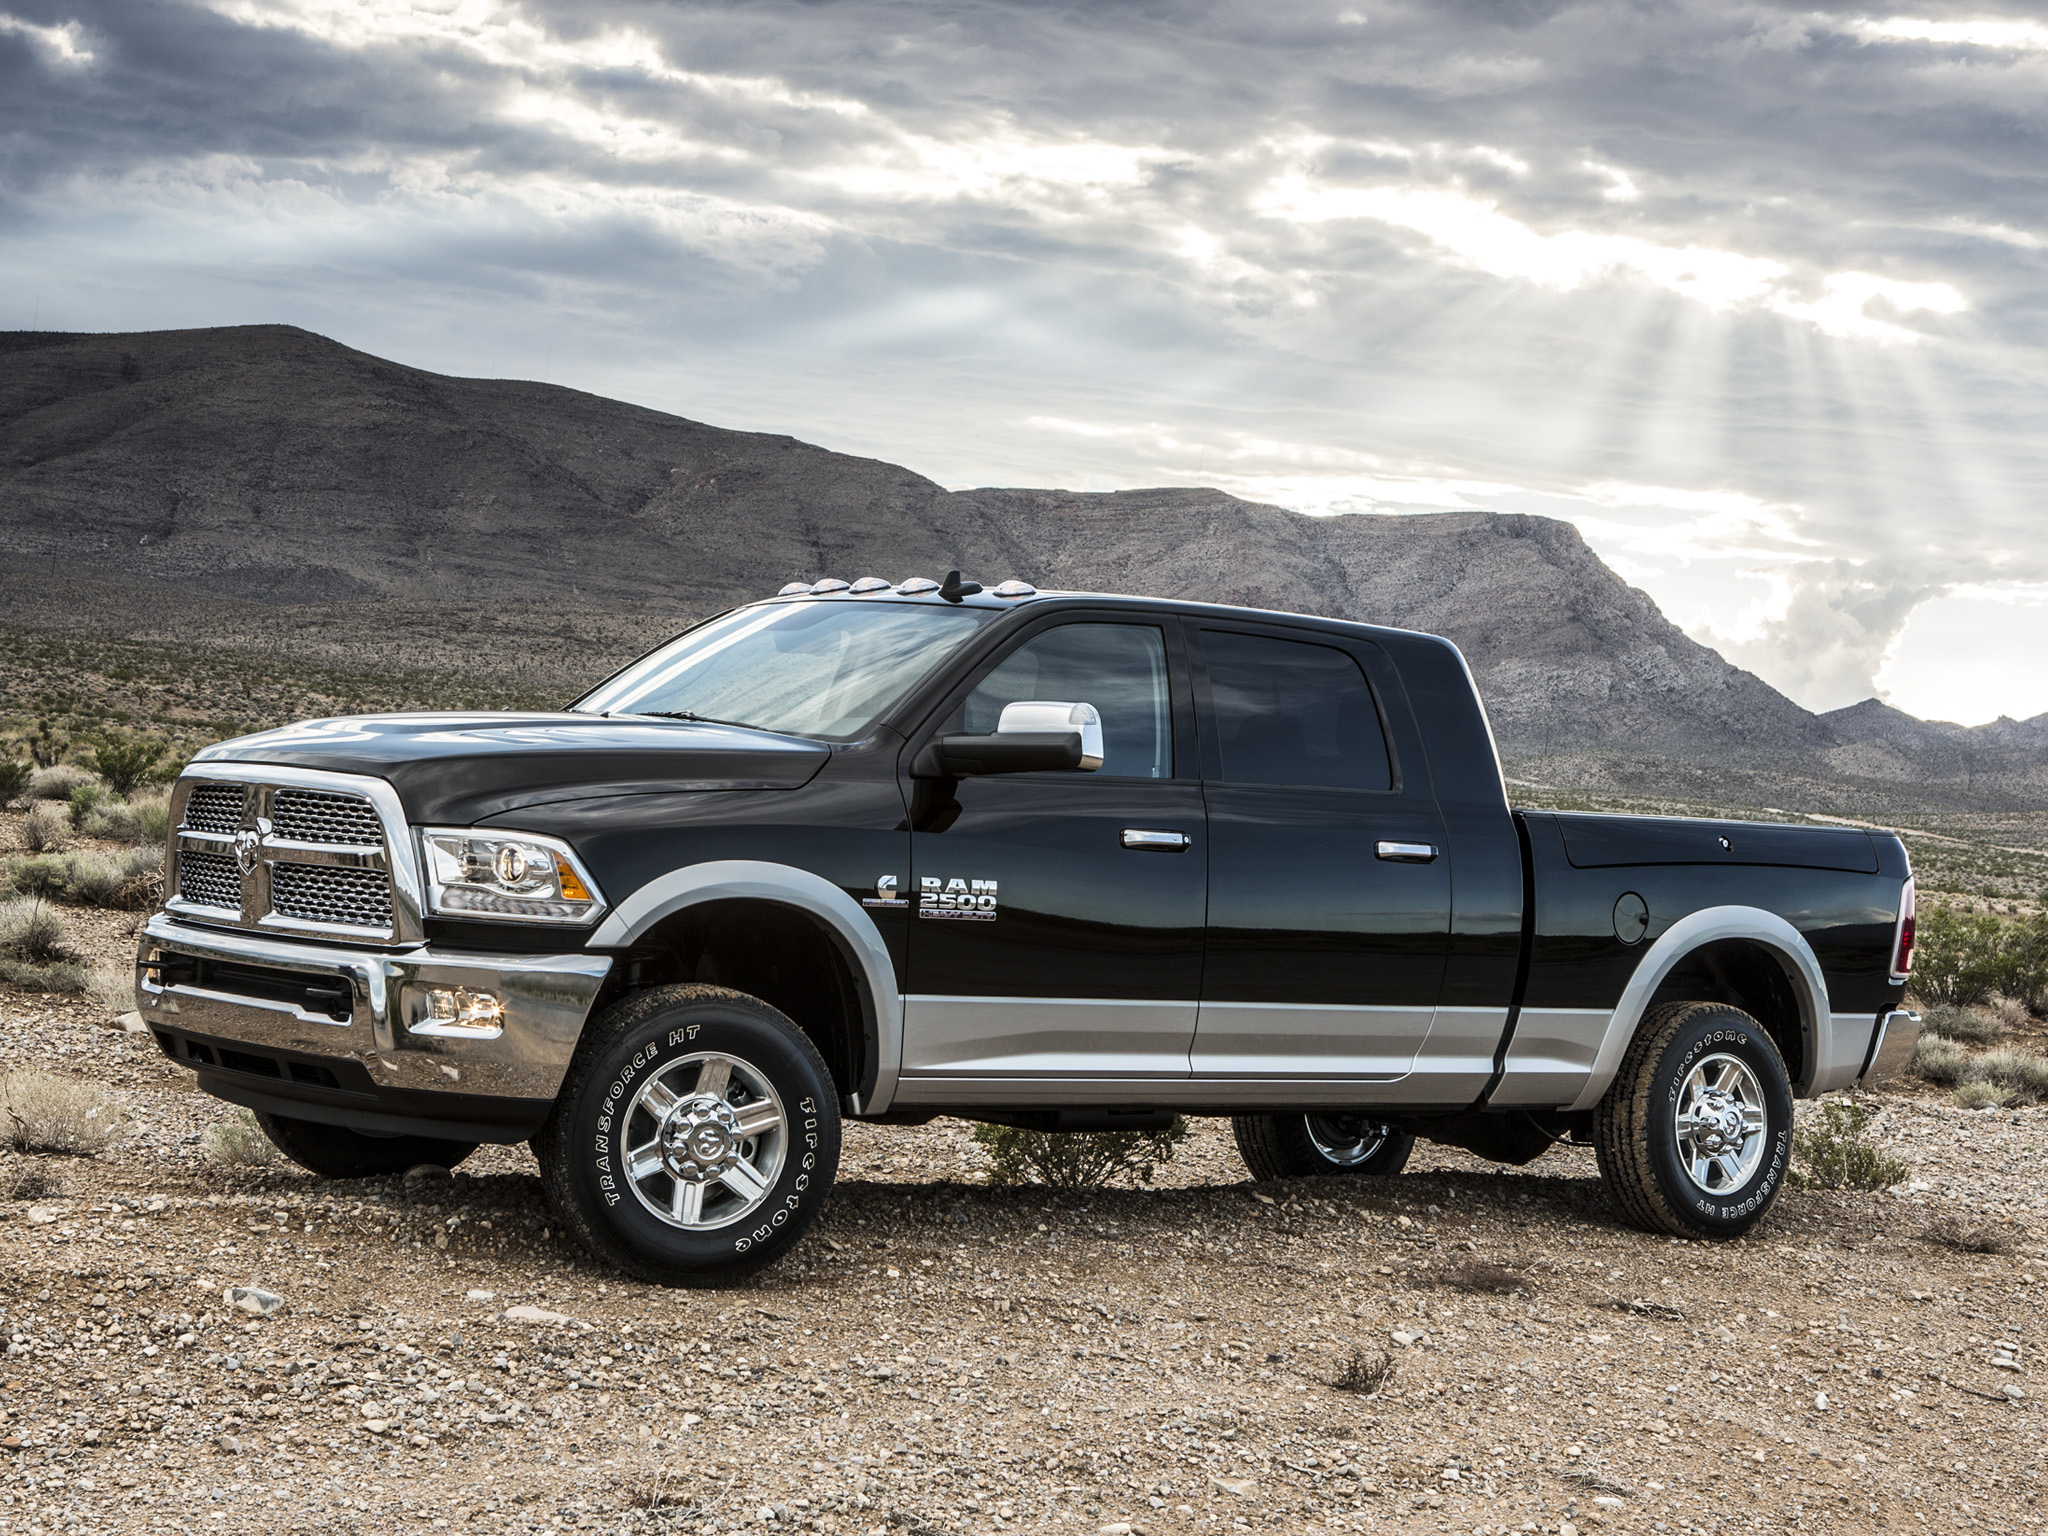 dodge ram 2500 photos photogallery with 22 pics. Black Bedroom Furniture Sets. Home Design Ideas